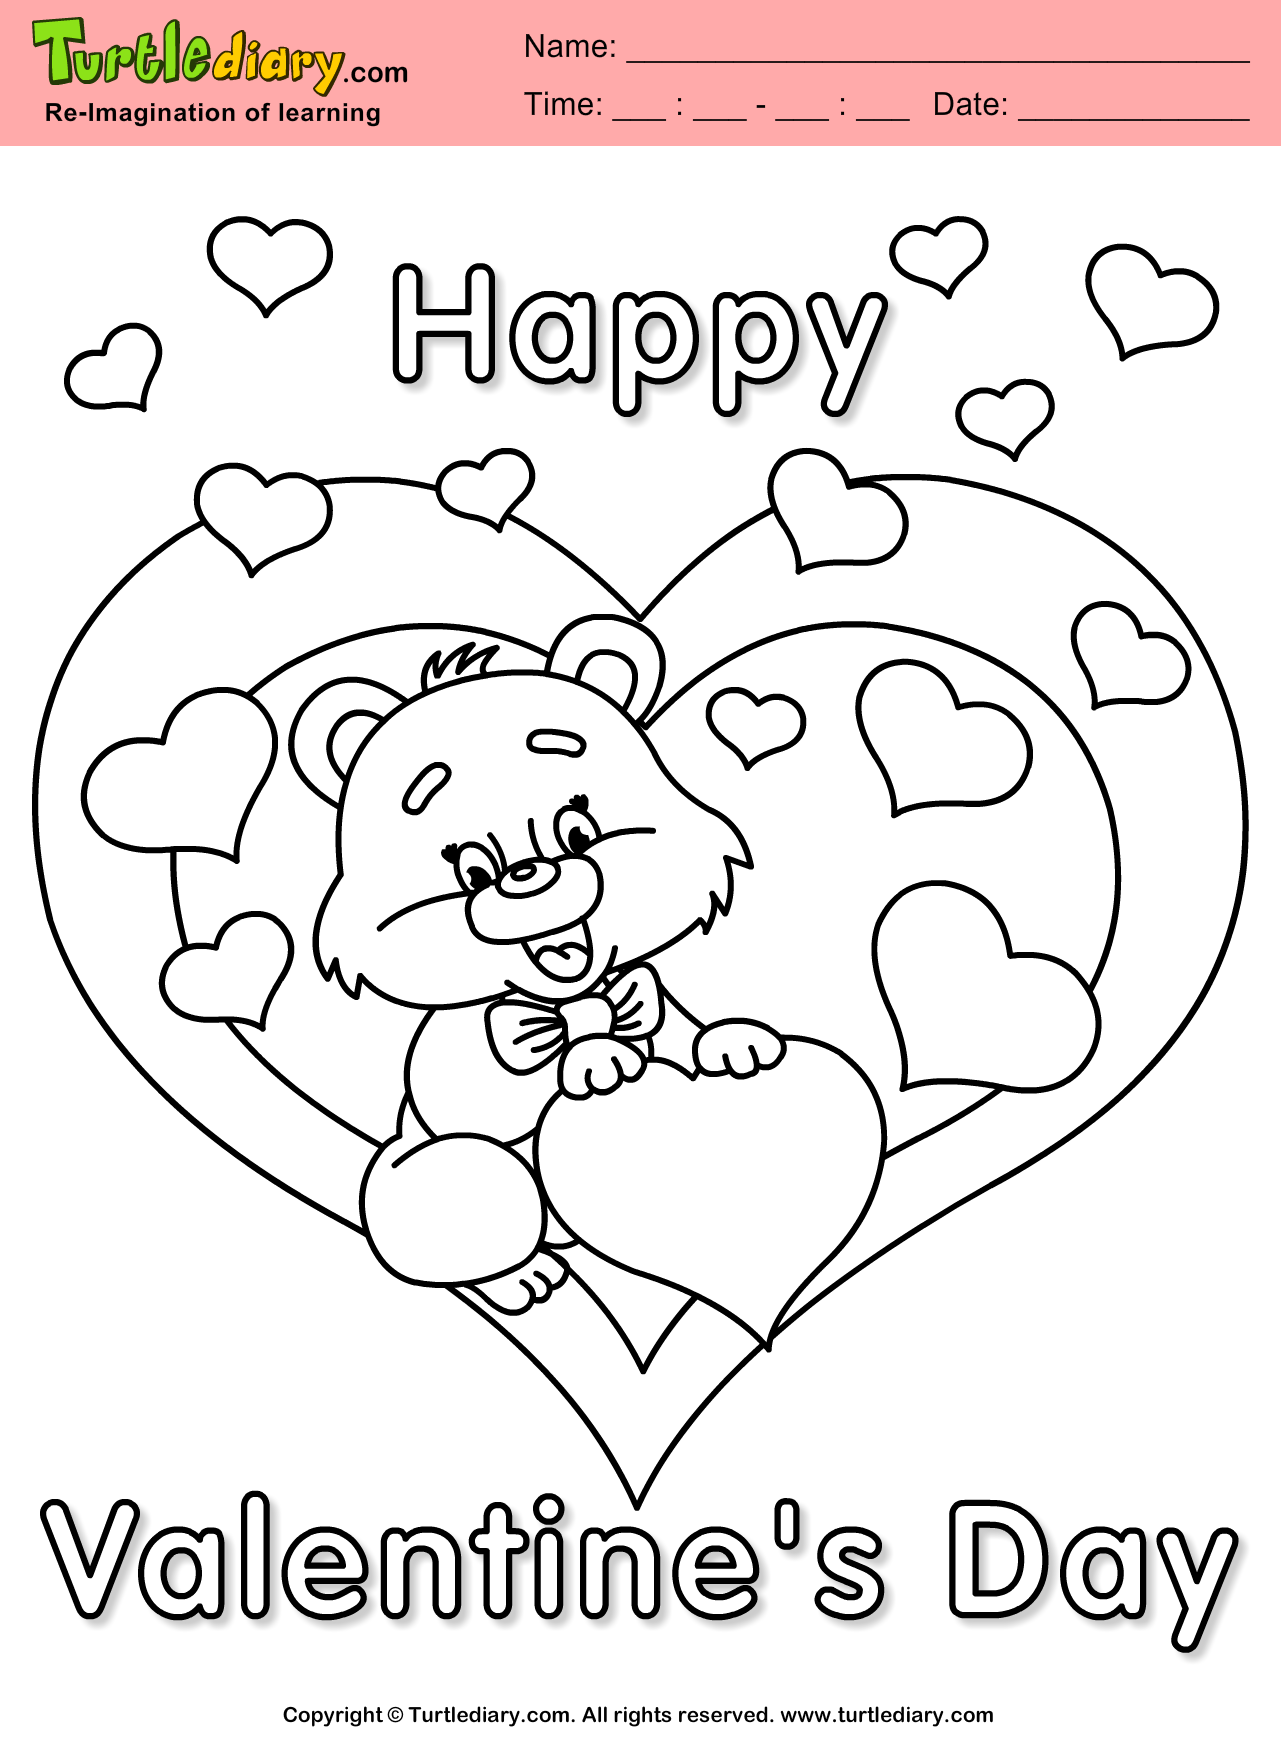 Teddy Bear with Heart Valentine's Day Coloring Page.